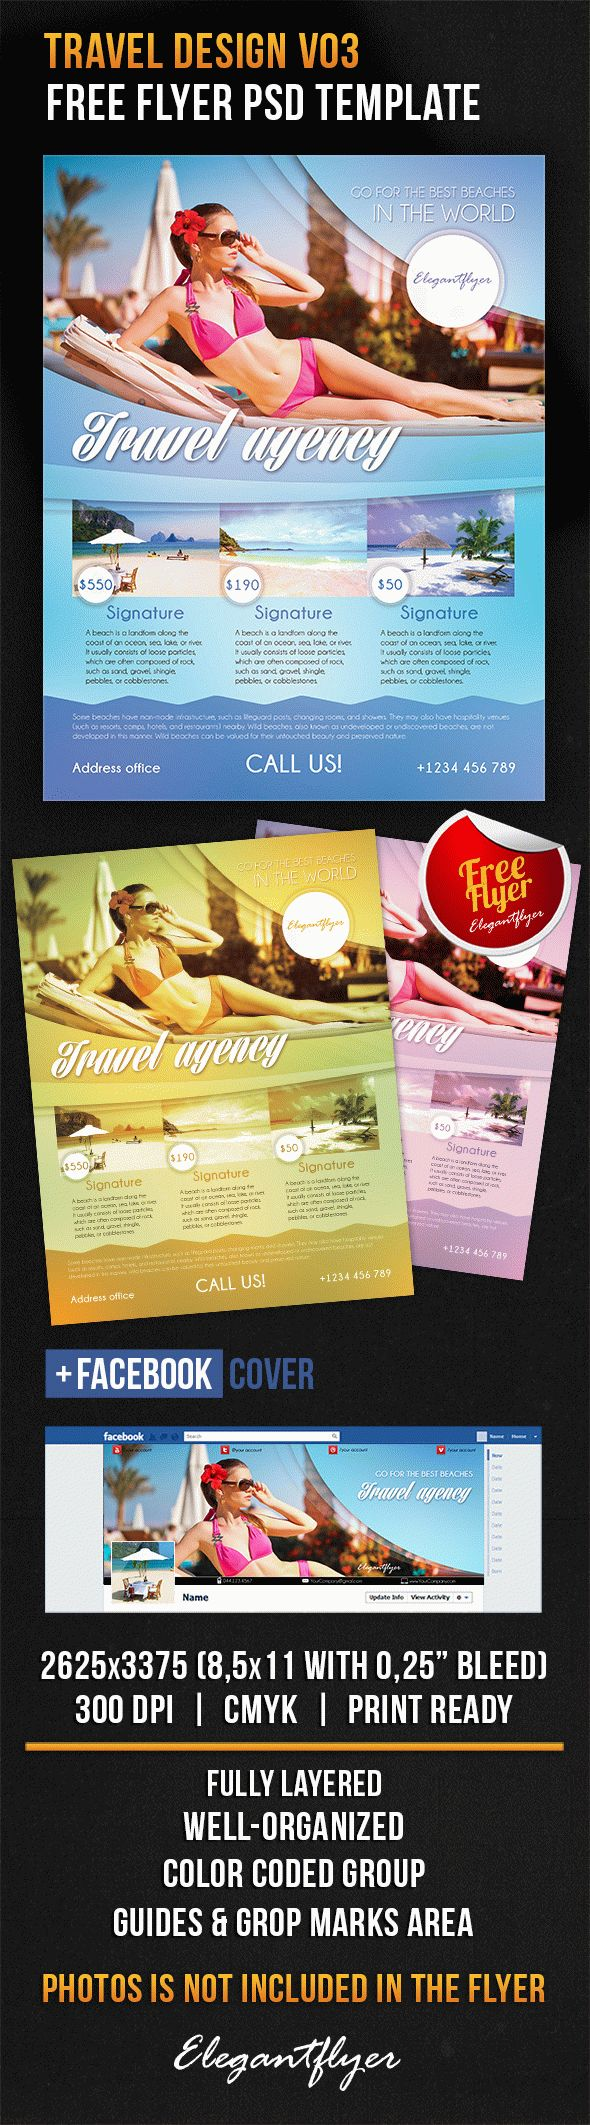 Travel Design V03 – Free Flyer PSD Template